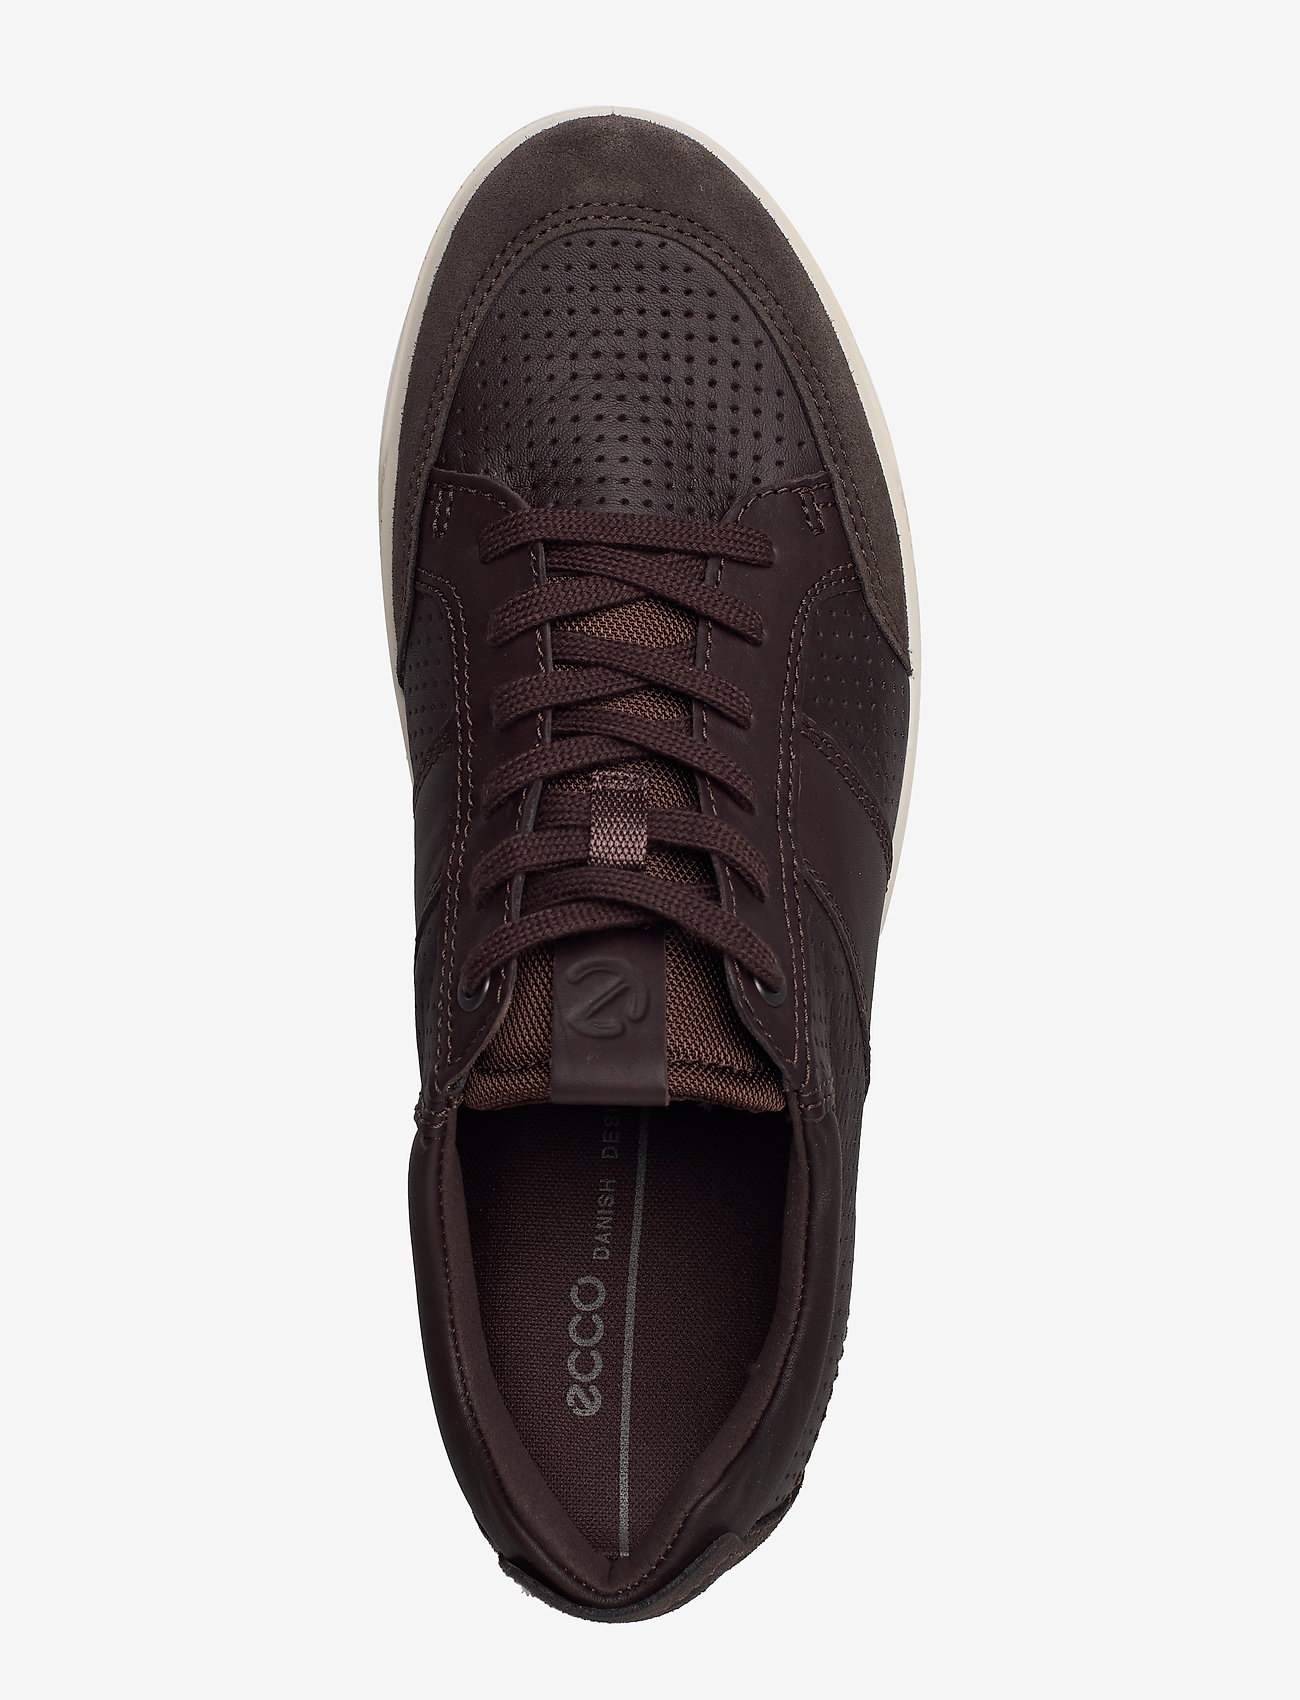 Byway (Licorice/coffee) - ECCO